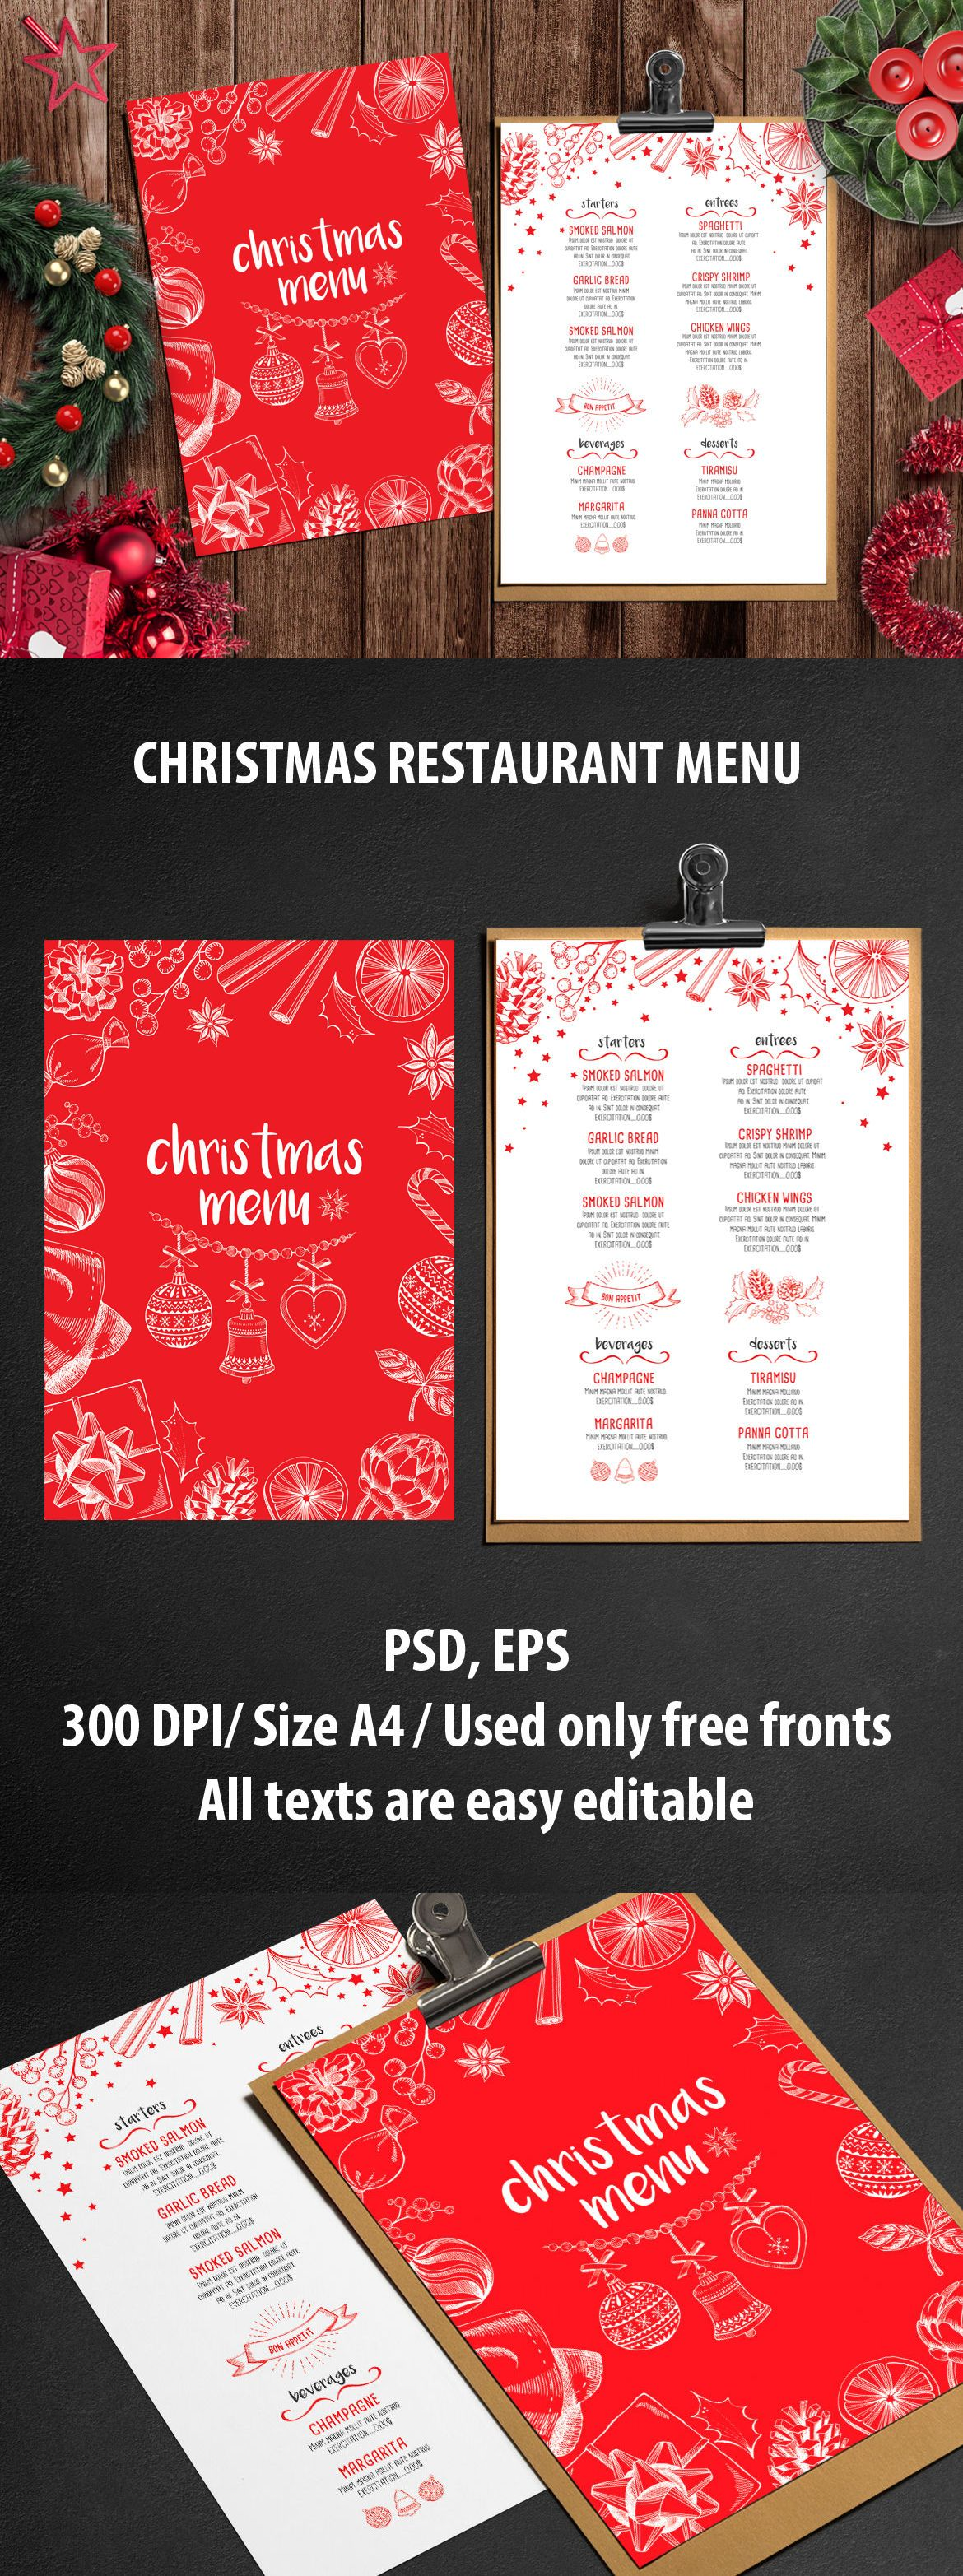 christmas menu restaurant template vector eps psd best. Black Bedroom Furniture Sets. Home Design Ideas